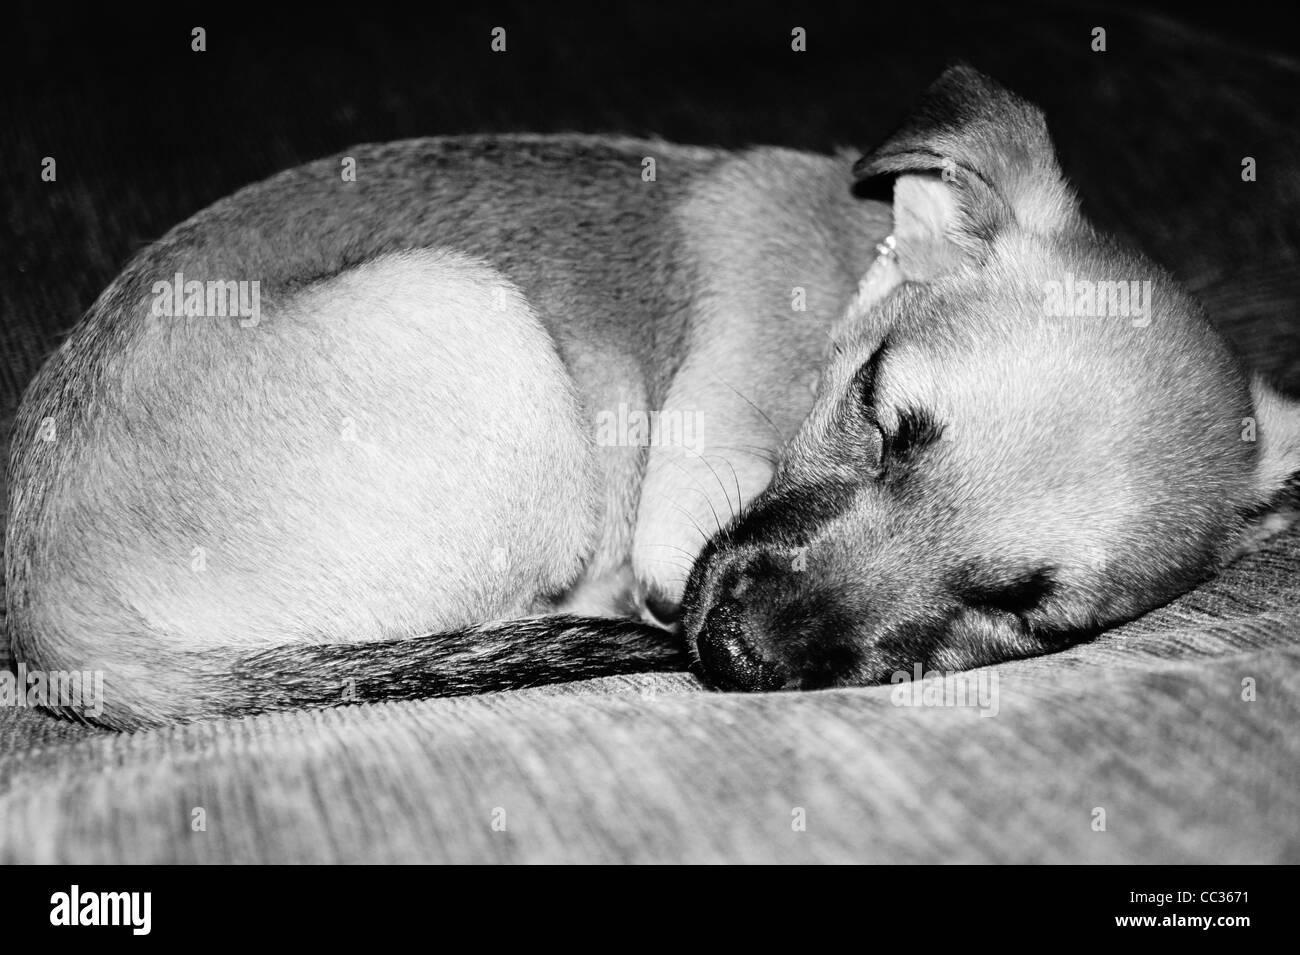 SONY DSC, Our sleeping pup. - Stock Image